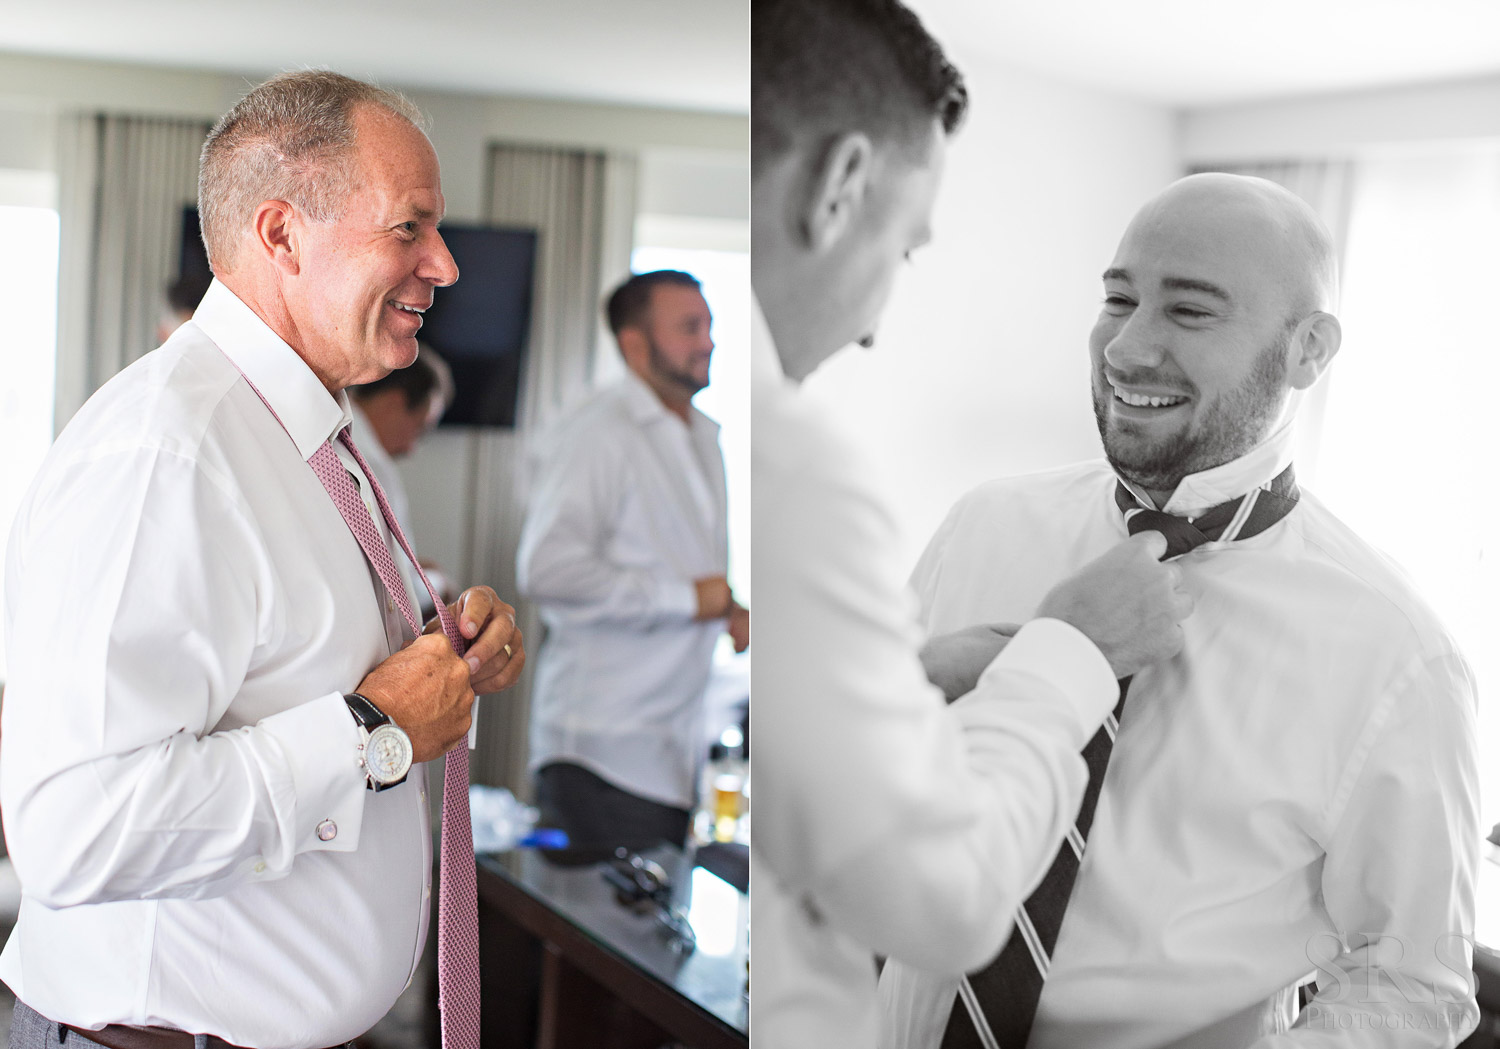 09_SRS_Photography_Sara_Stadtmiller_Asbury_Park_Wedding_Photography_NJ_Wedding_Photographer_Monmouth_County_Wedding_Photographer_Home_Wedding_Getting_Ready